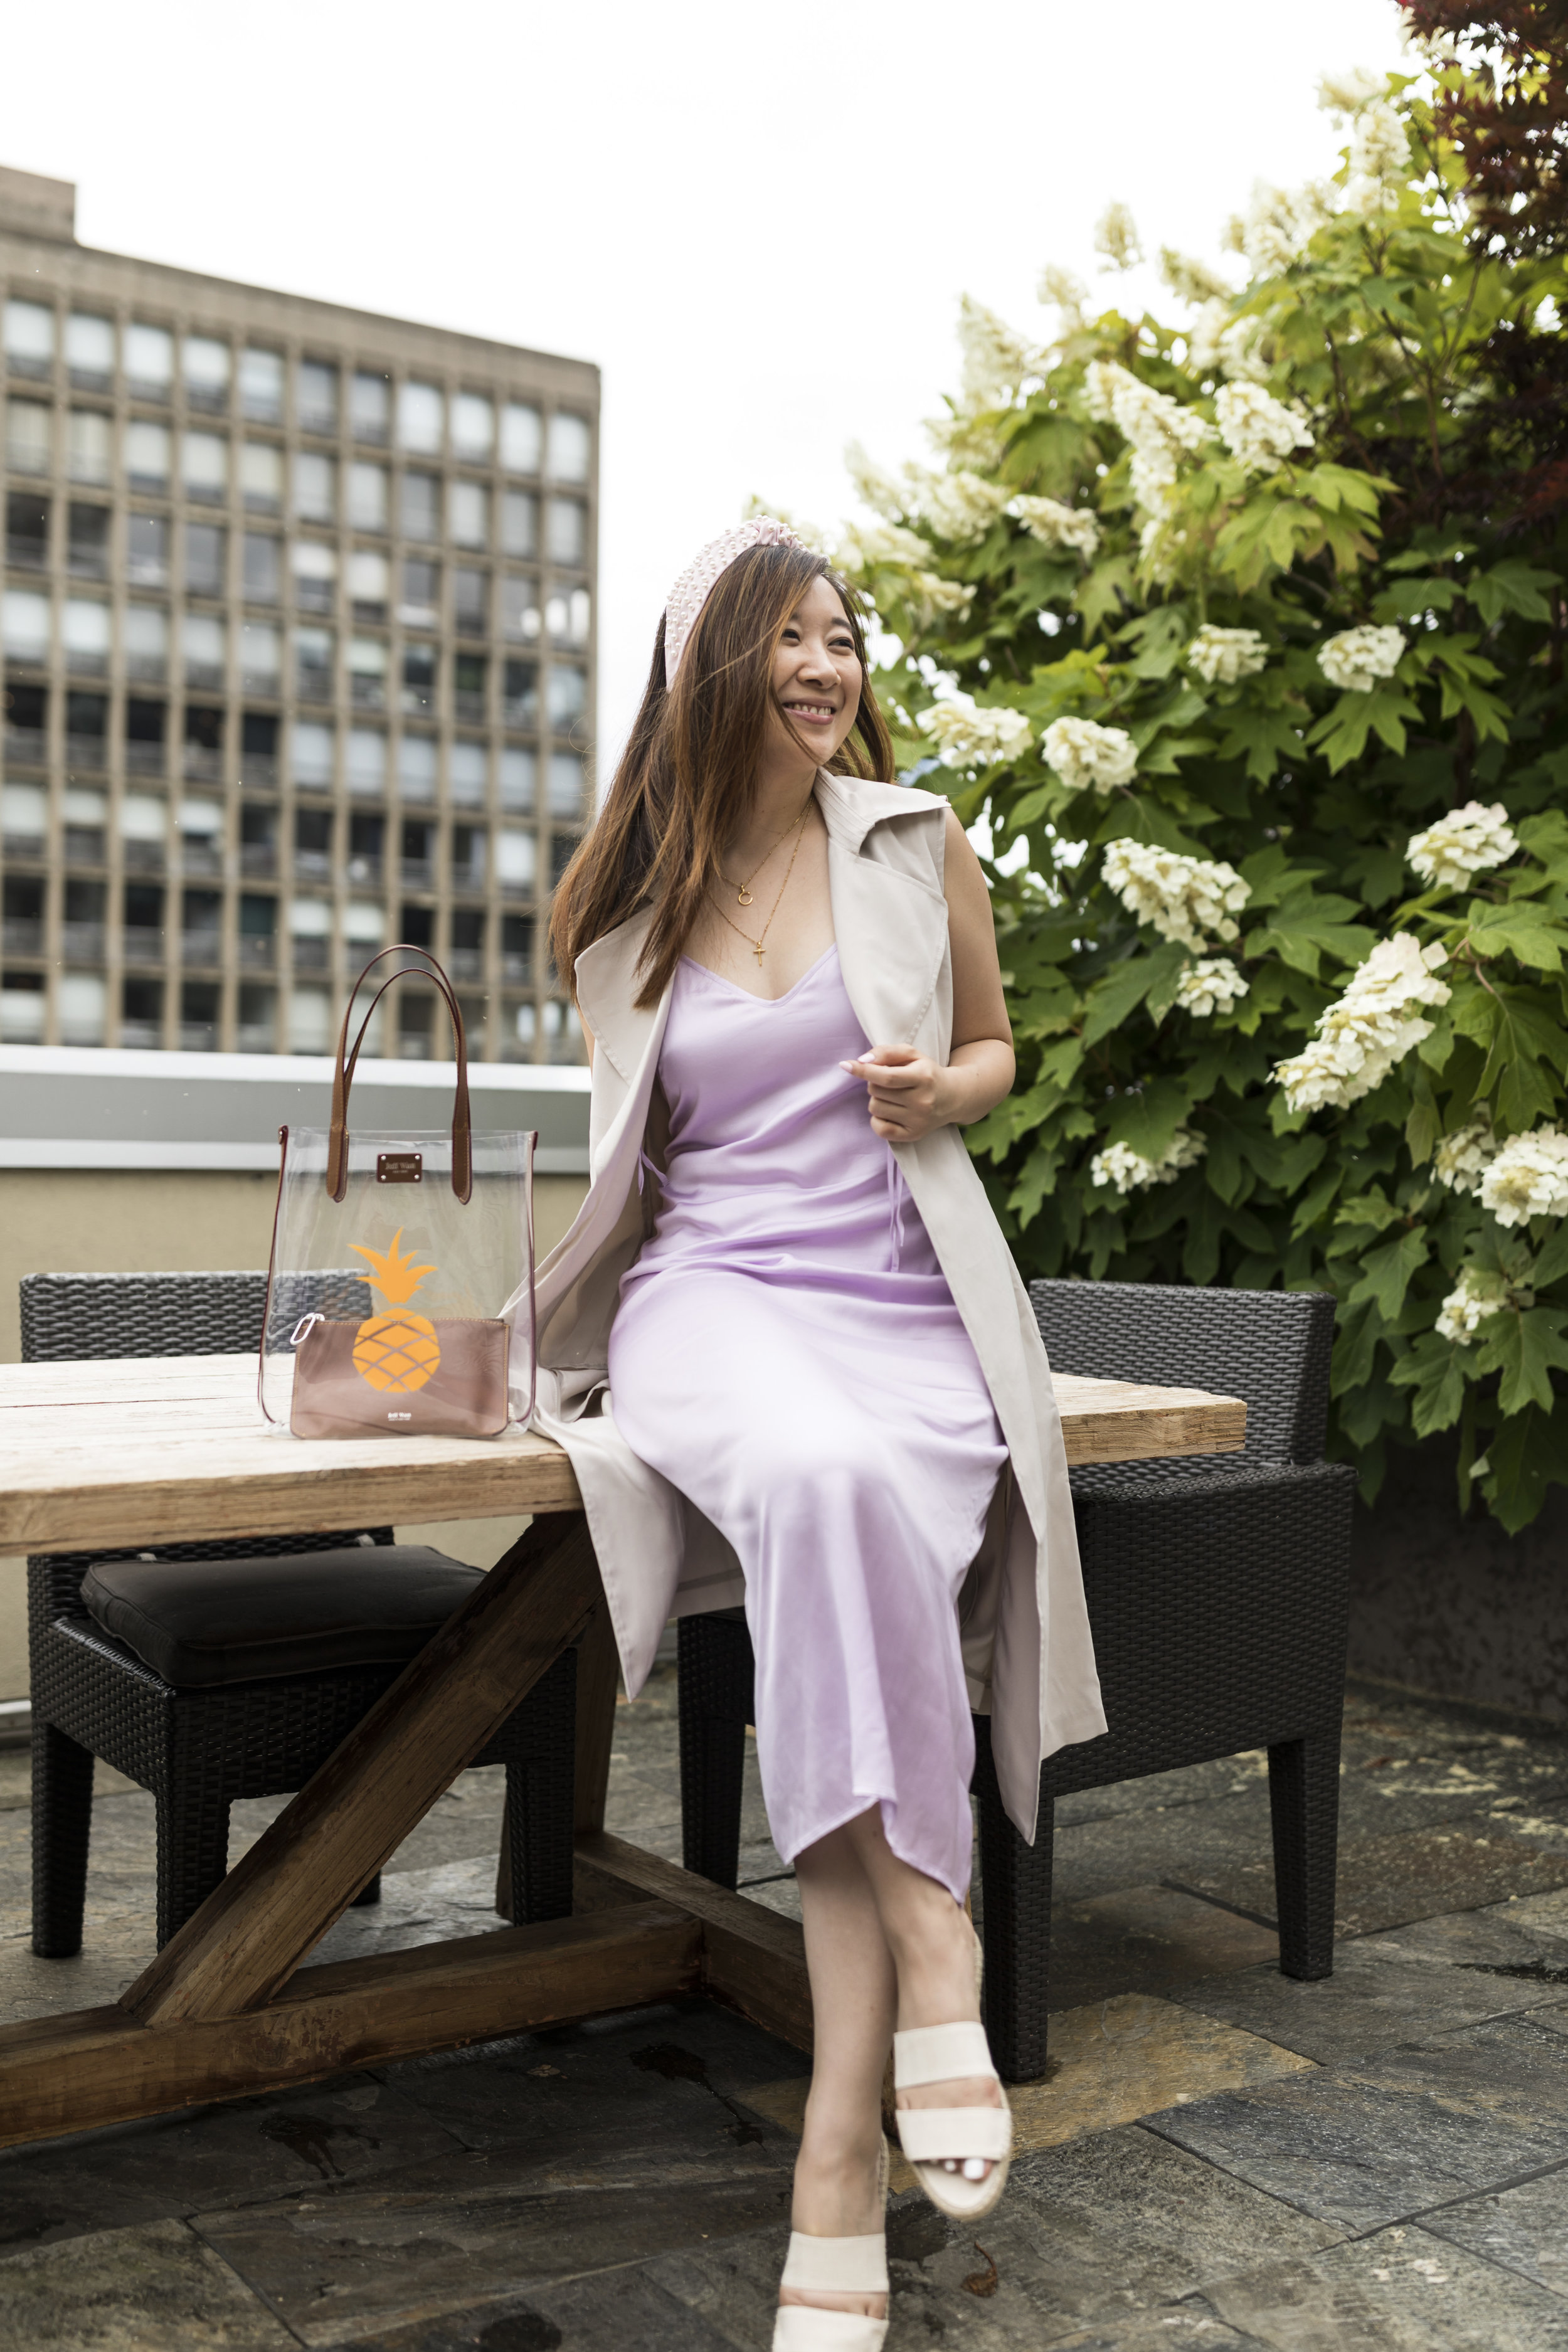 Ready for a Rooftop Picnic - One of my husband's favorite summer activities is to go for a picnic, whether it is in the park, by the water or on a rooftop!This casual weekend outfit features a maxi vest, flat sandals from Mint and Rose, as well as a clear tote by Jeff Wan.Photo by Ashley Gallerani Photography.